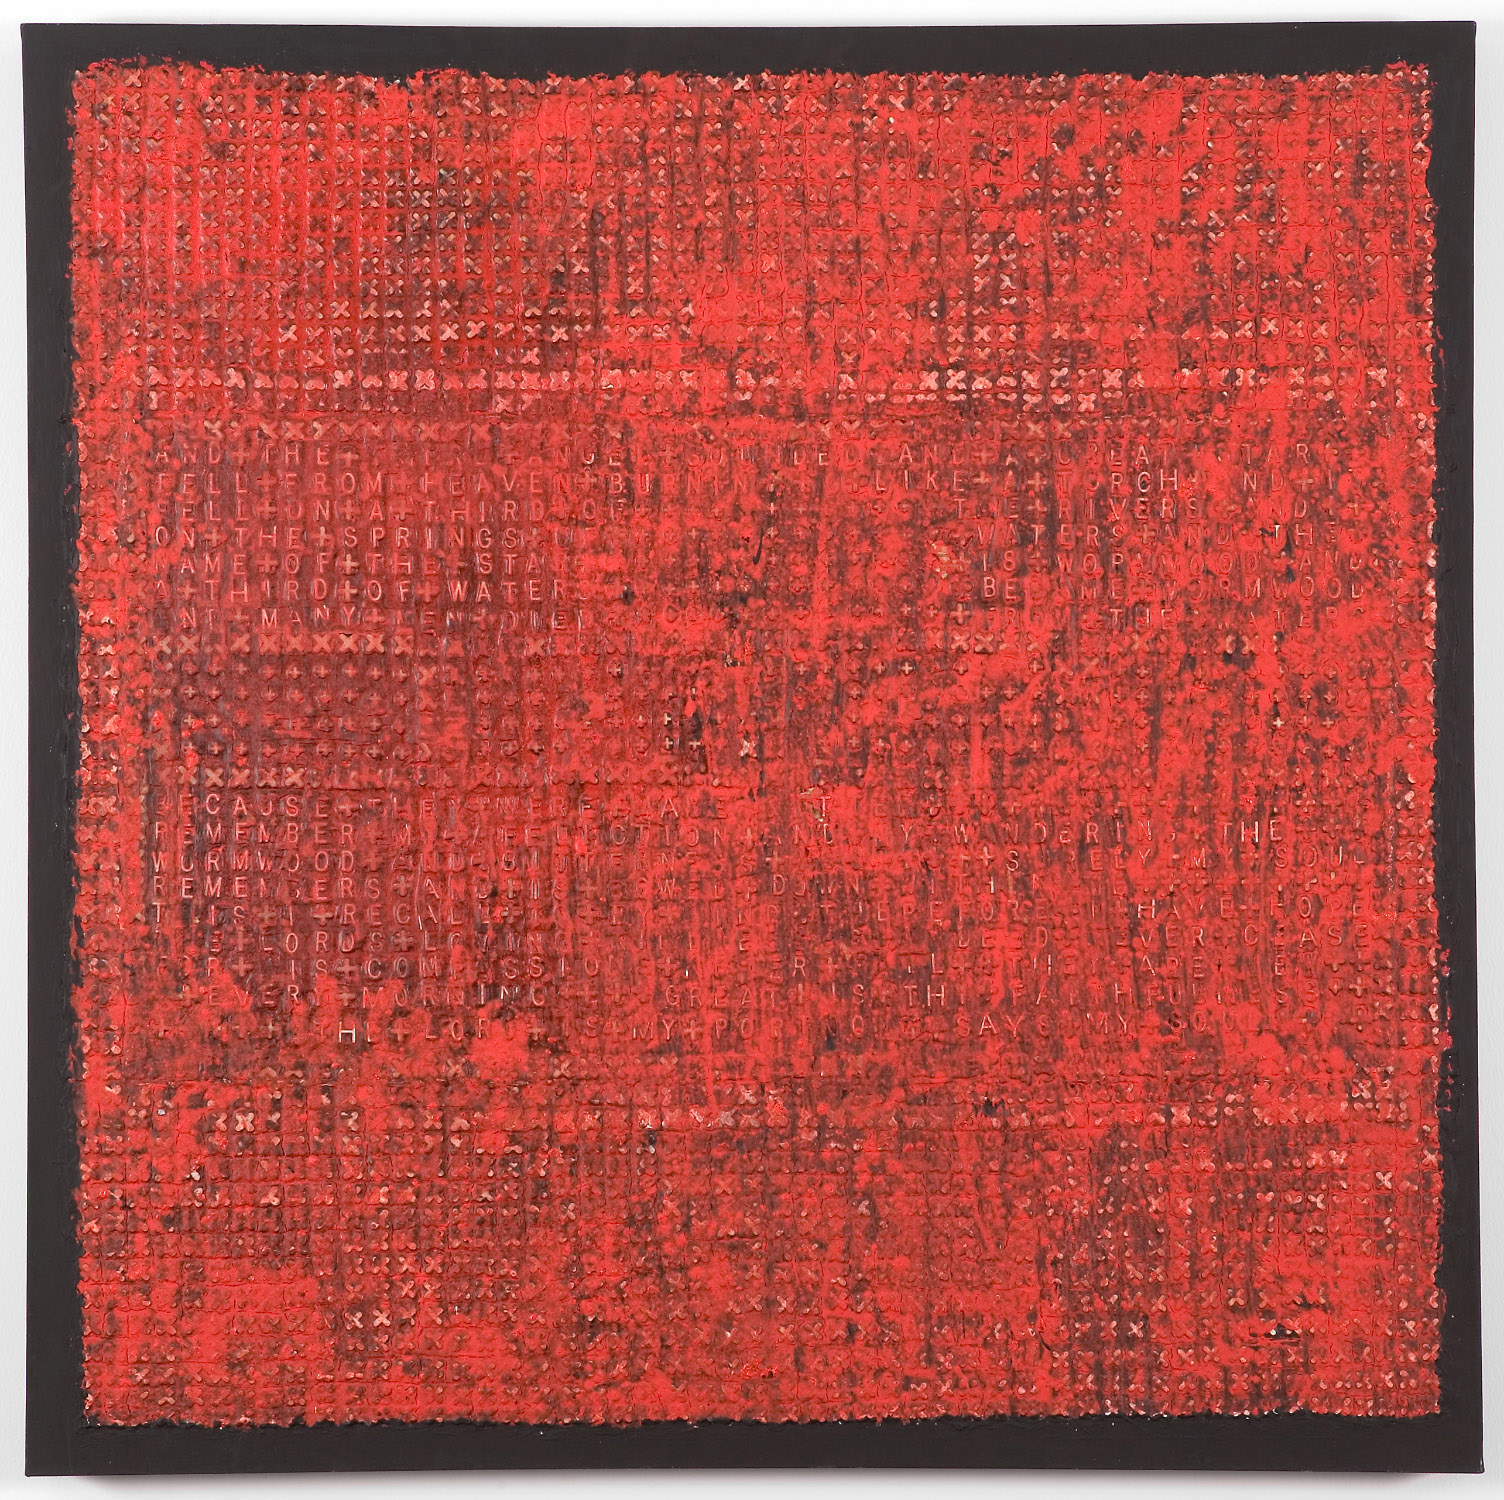 2bm(0)-Foretold - oil, resins, plastic letters on canvas - 54x54 in., 2004.jpg